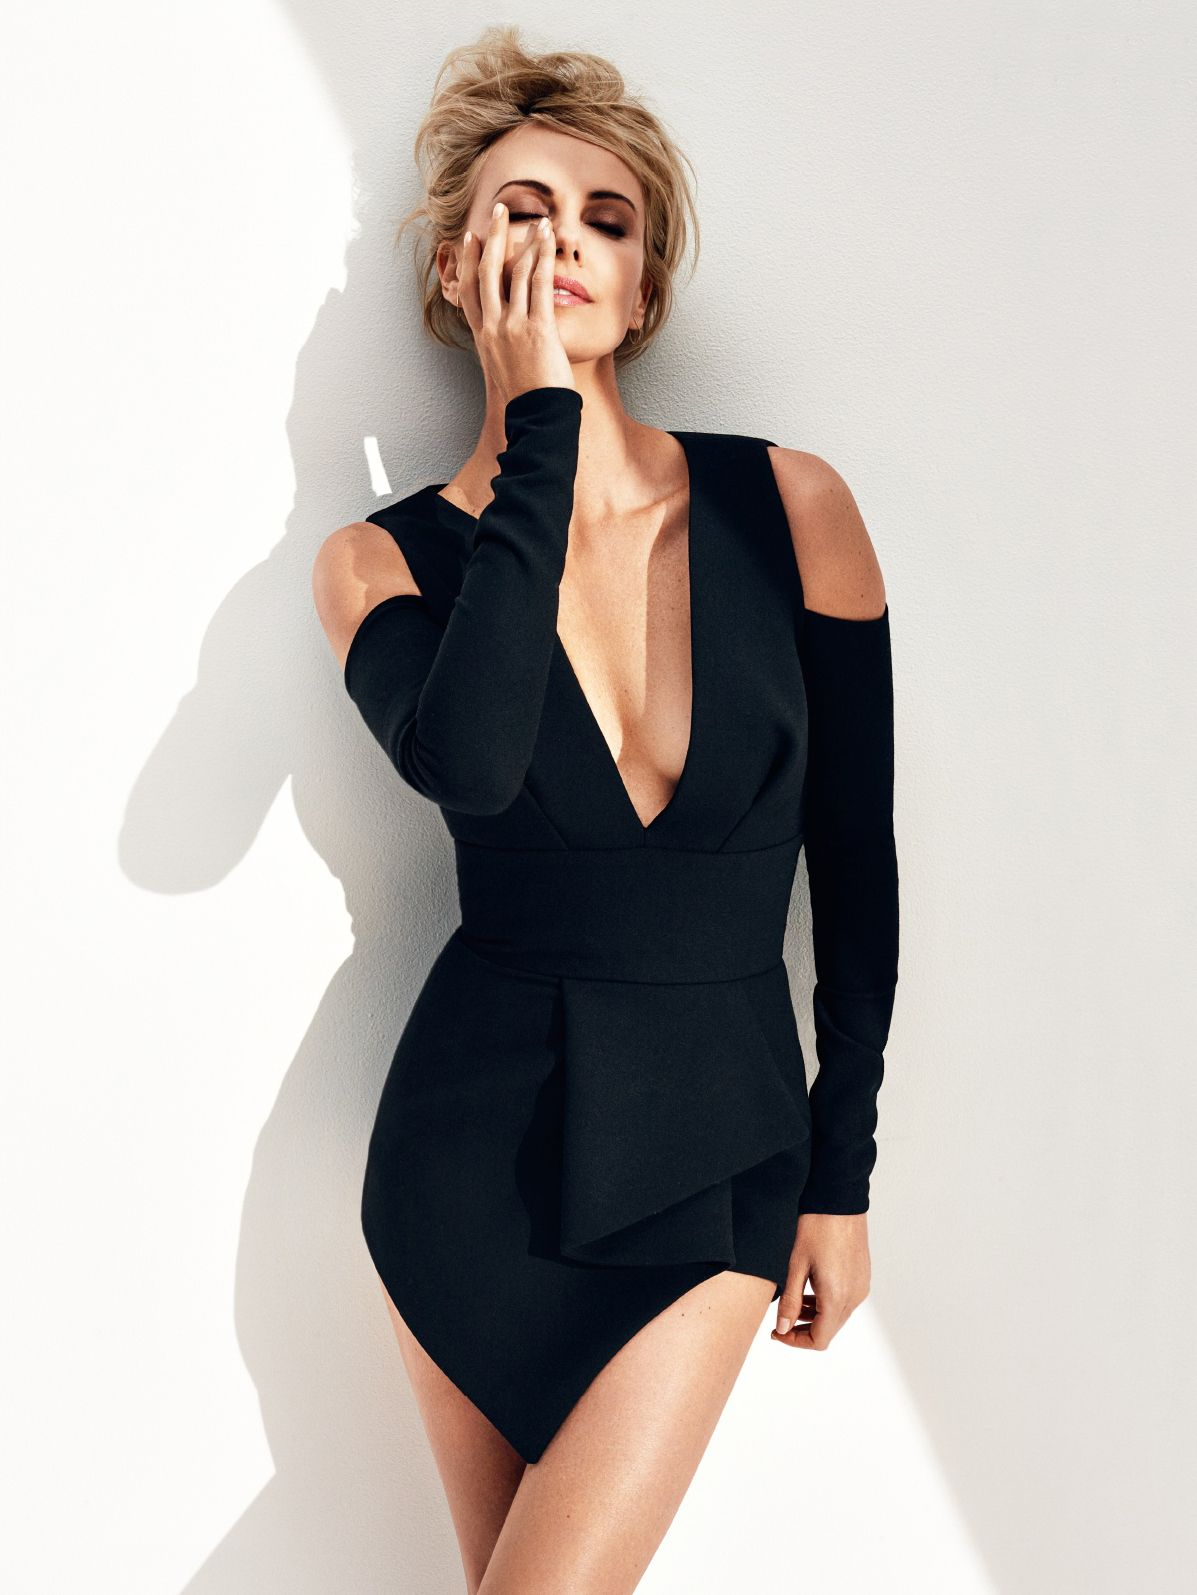 Charlize-Theron-Sexy-7